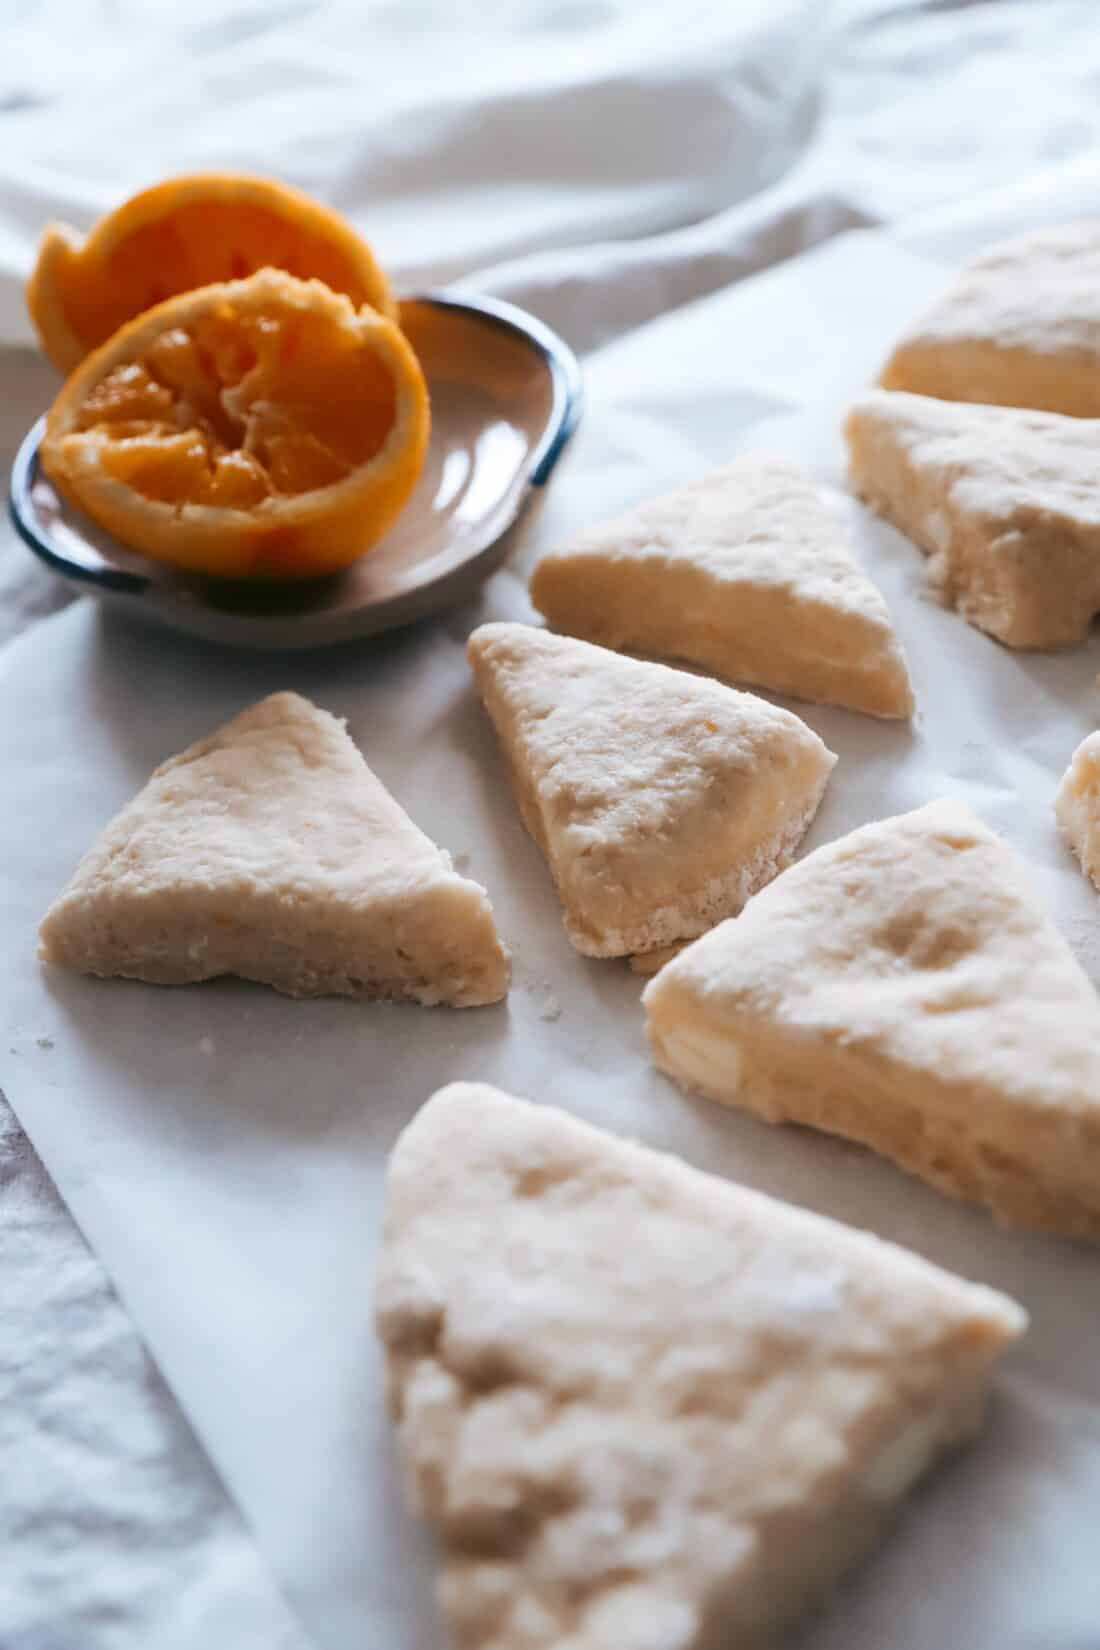 orange scone dough wedged laying on the table ready to be baked